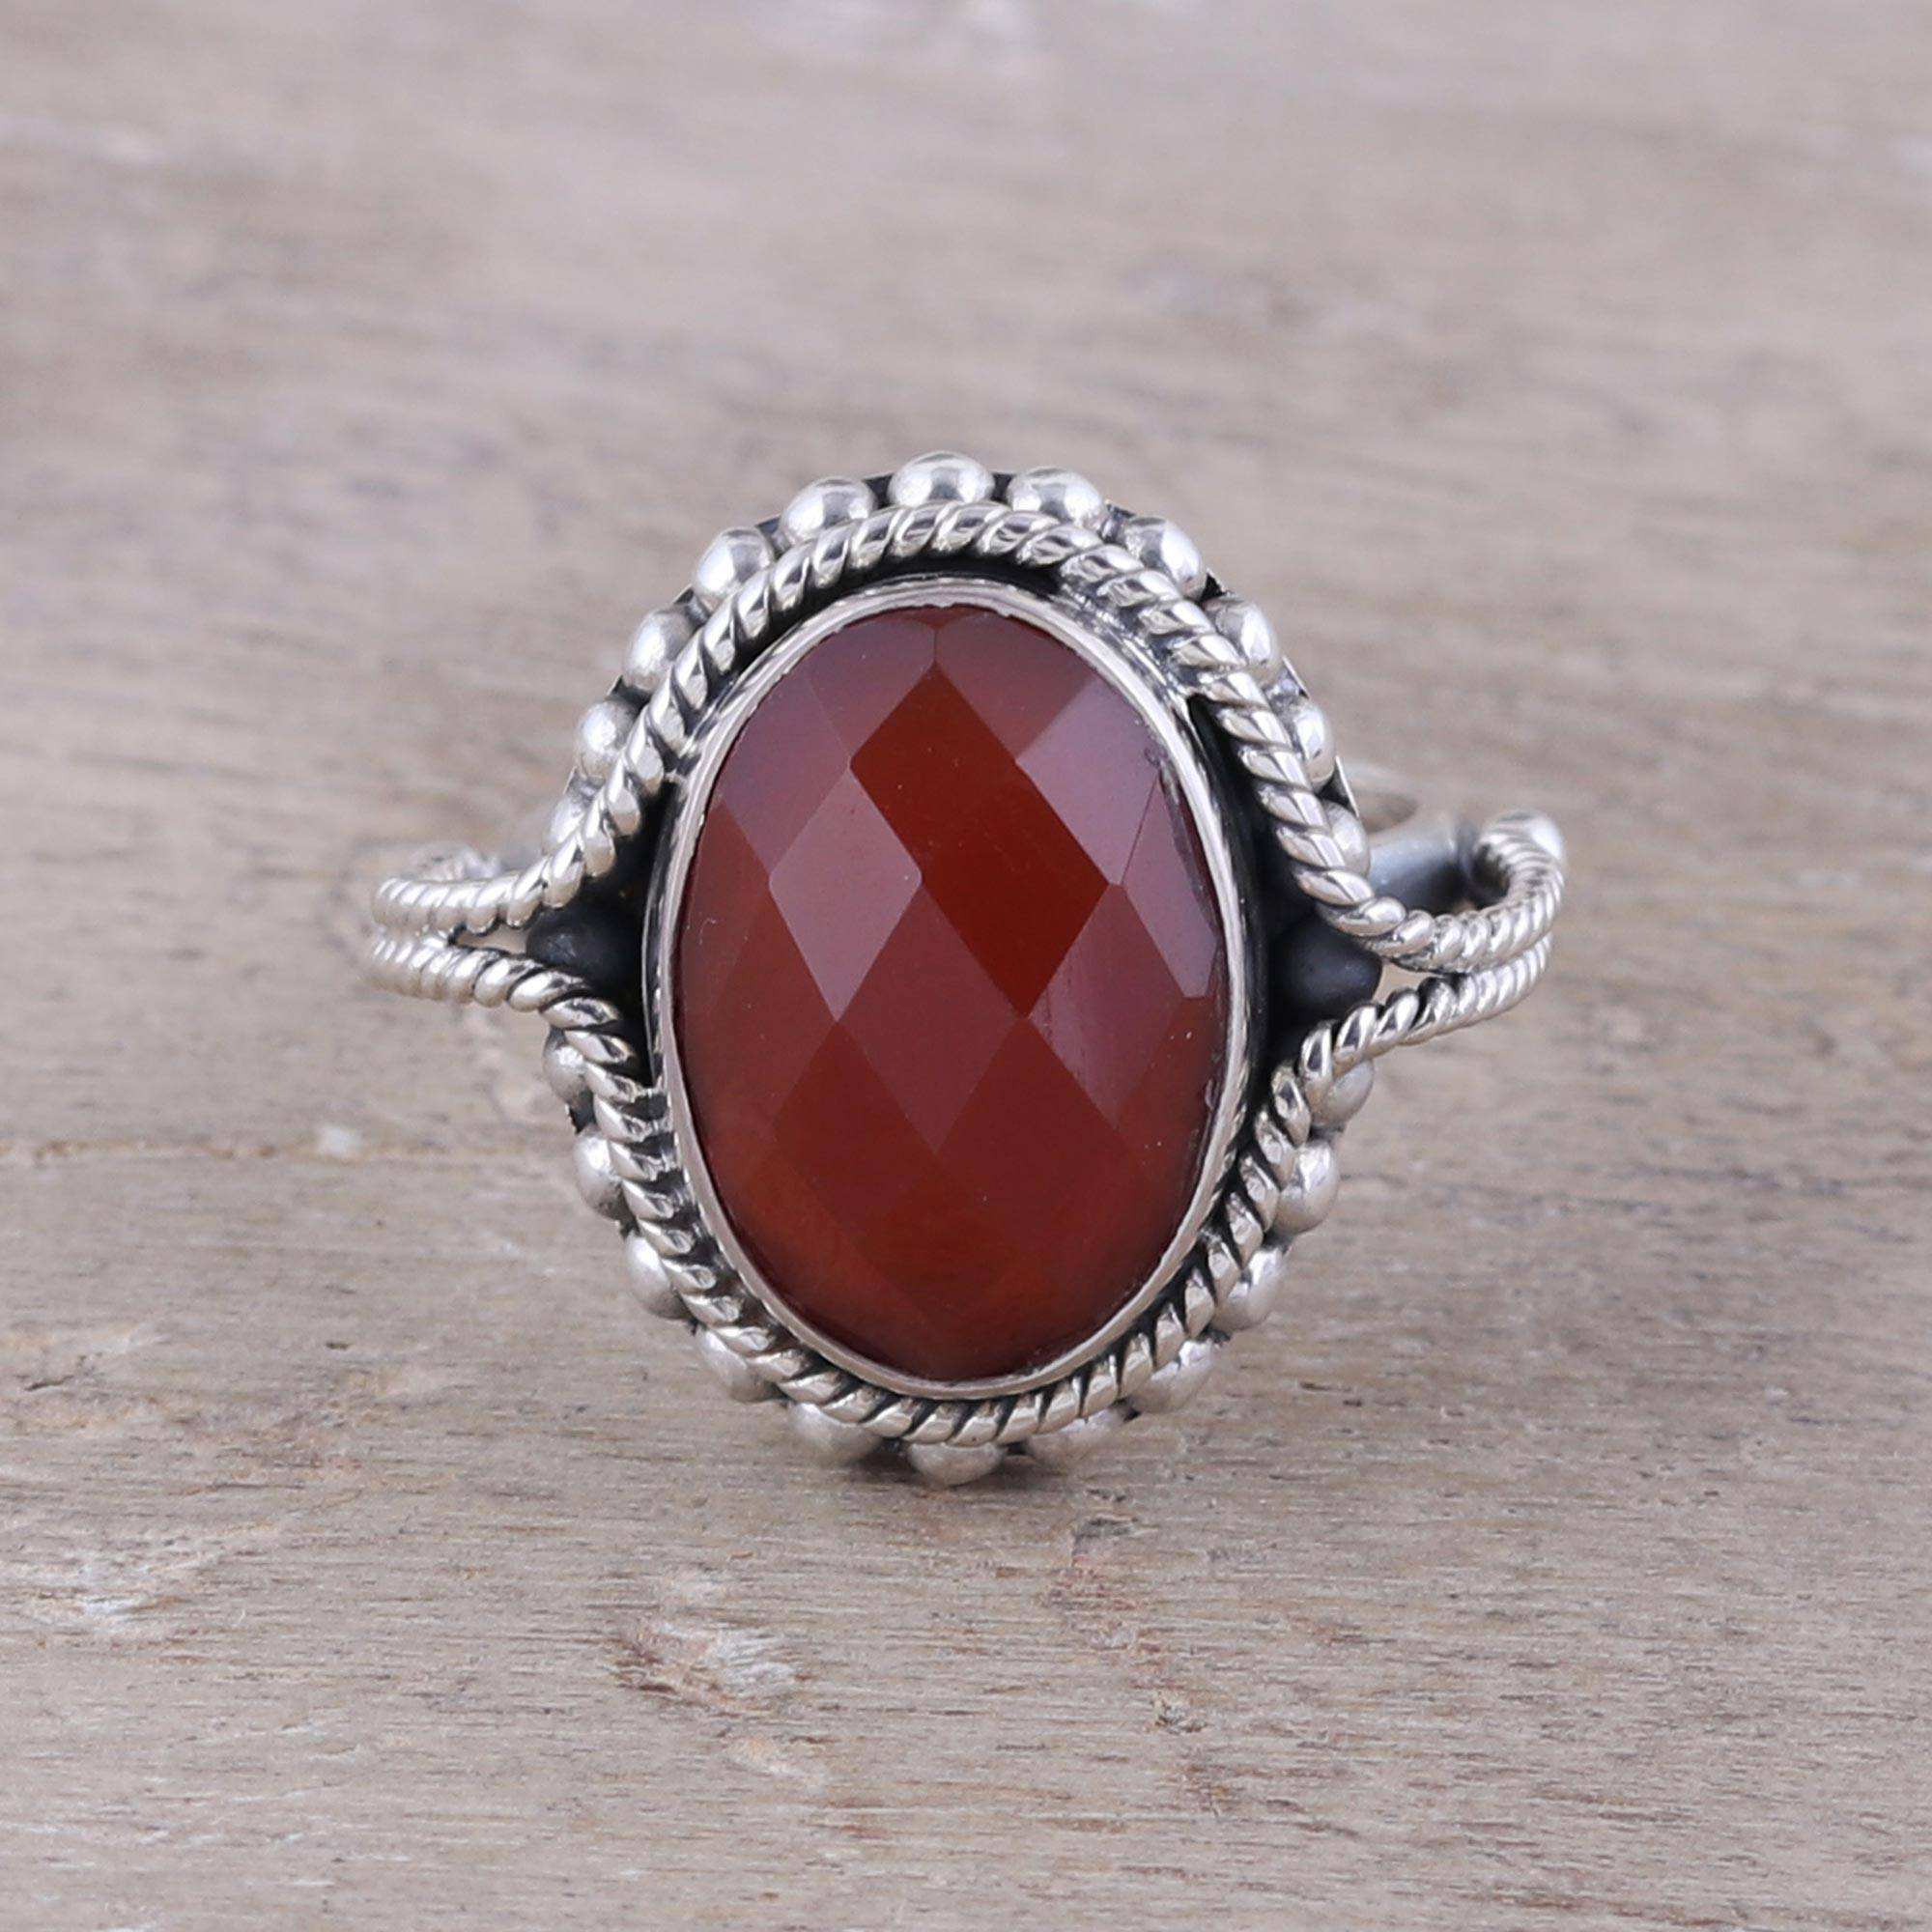 CARNELIAN RING - Unique carnelian rings at NOVICA